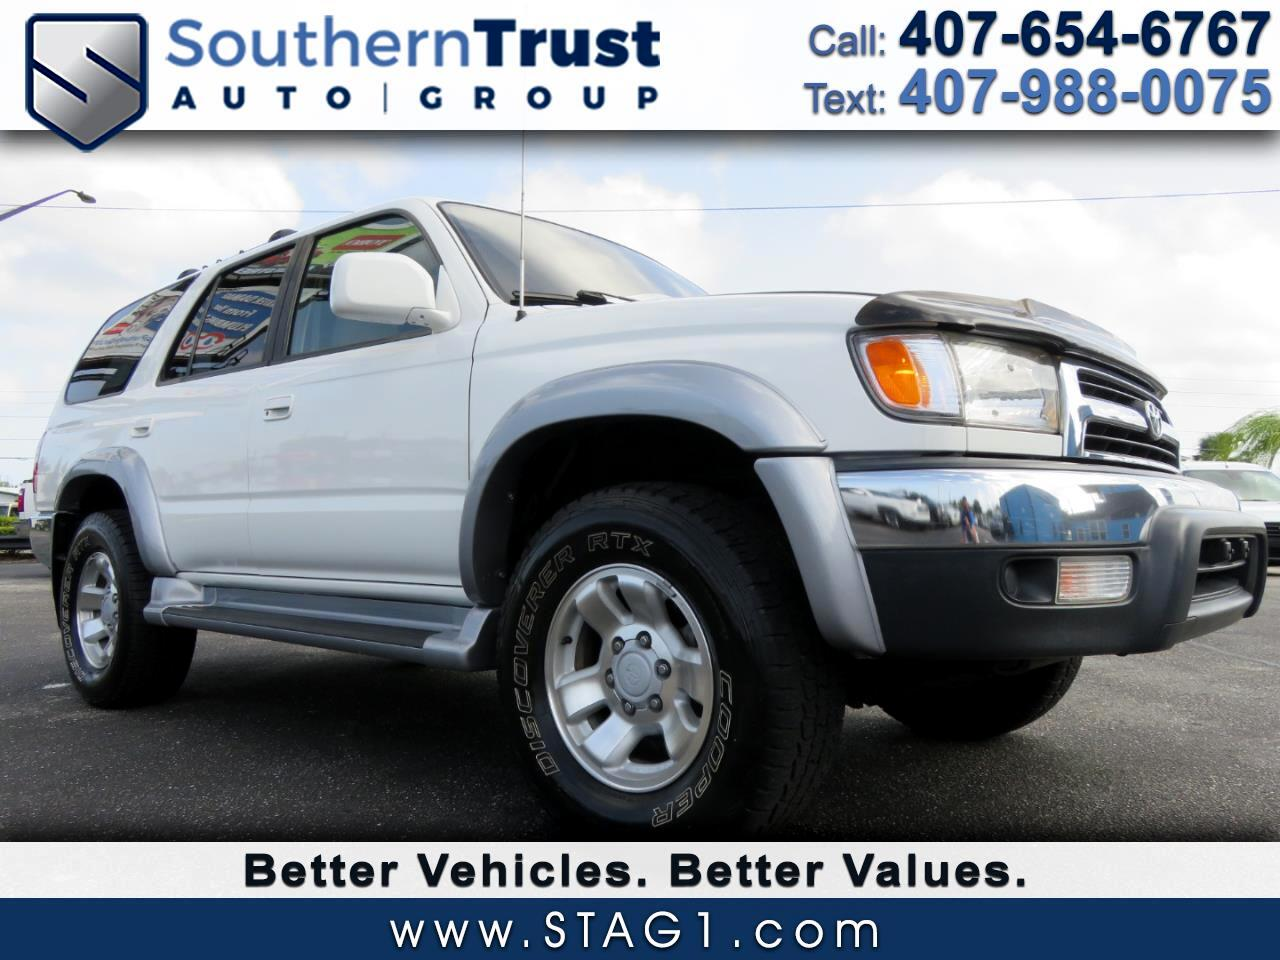 Toyota 4Runner 4dr SR5 3.4L Auto 4WD 2000